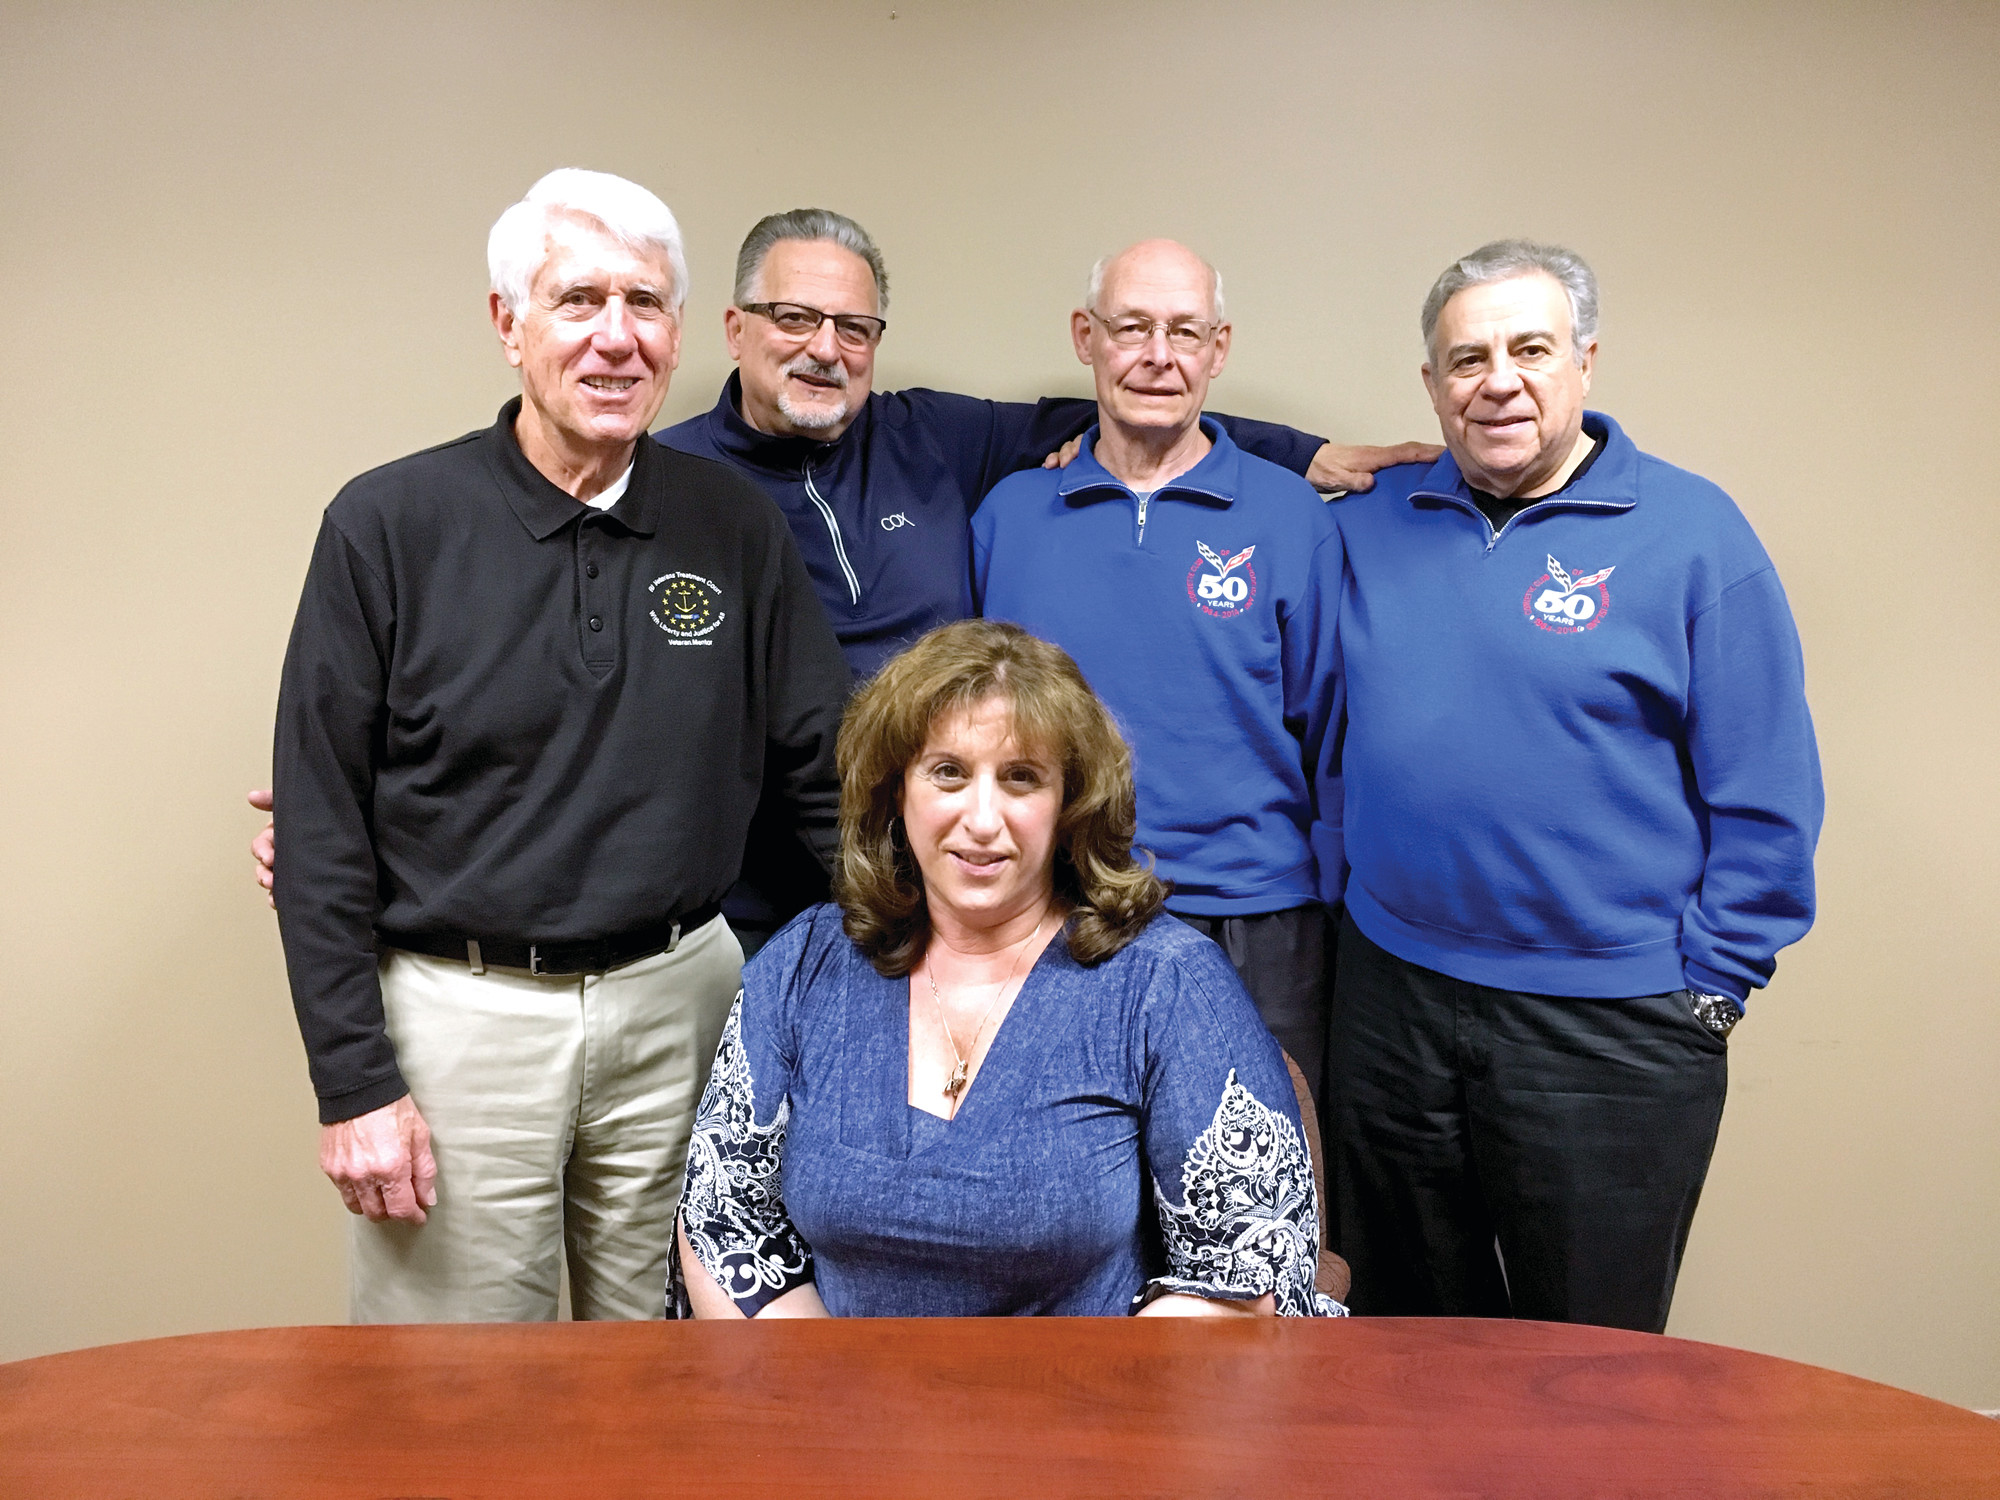 IT'S A FAMILY: Leaders of the Corvette Club met on Friday to chat about the club that celebrates their favorite car. Pictured from left is Membership Director Dennis Langlois, former President Jim Campanini, Board of Directors Member and Historian Richard Nelson, Vice President Tony Montalbano, and President Liliana Dolan.